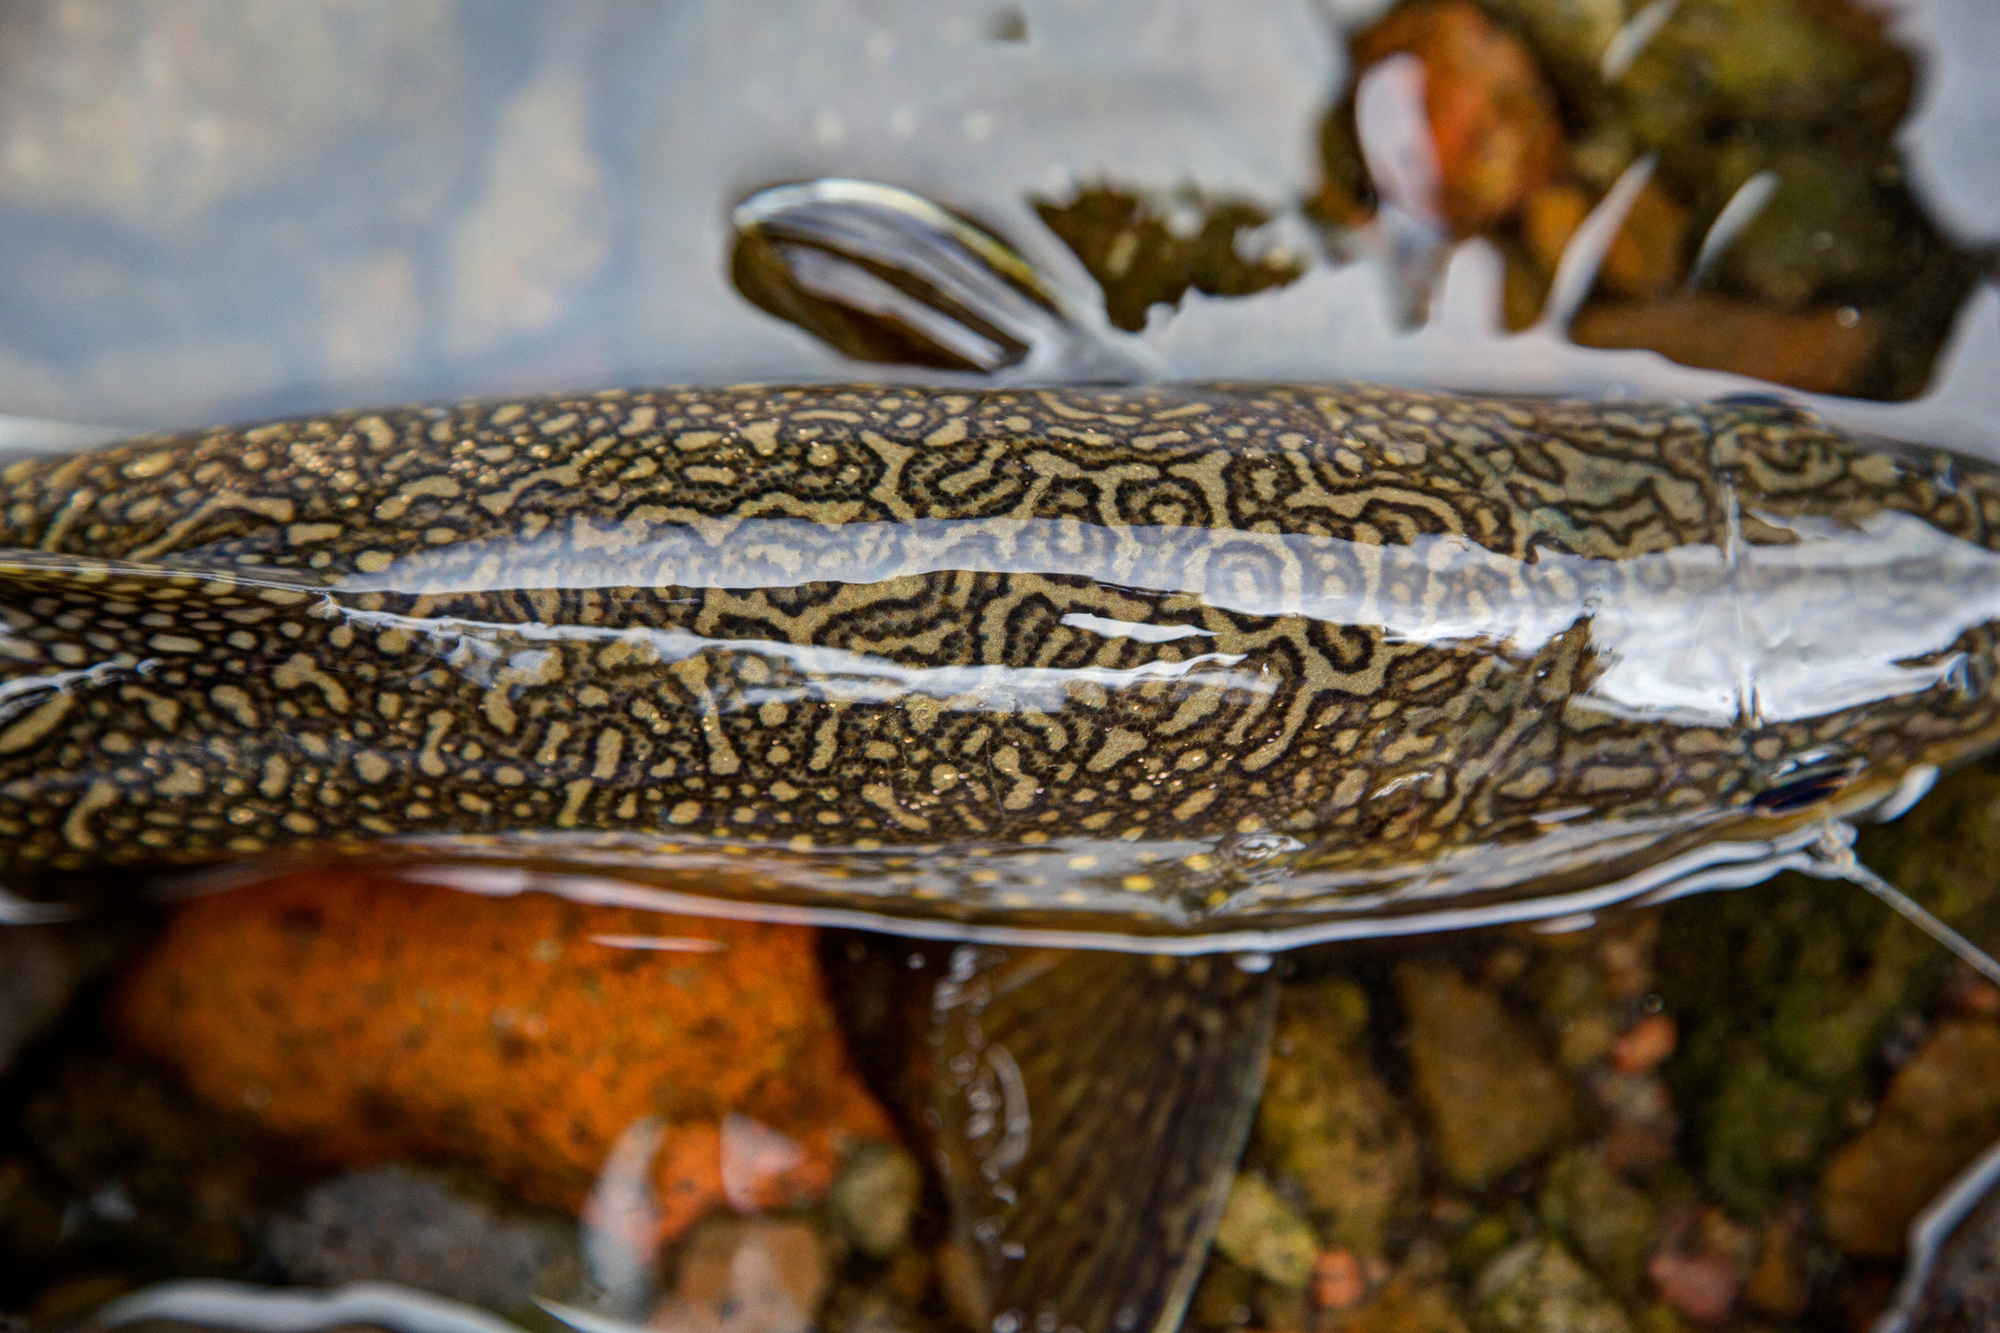 Beautiful vermiculation on this trout, caught by photographer Justin Hamblin on a high alpine lake.